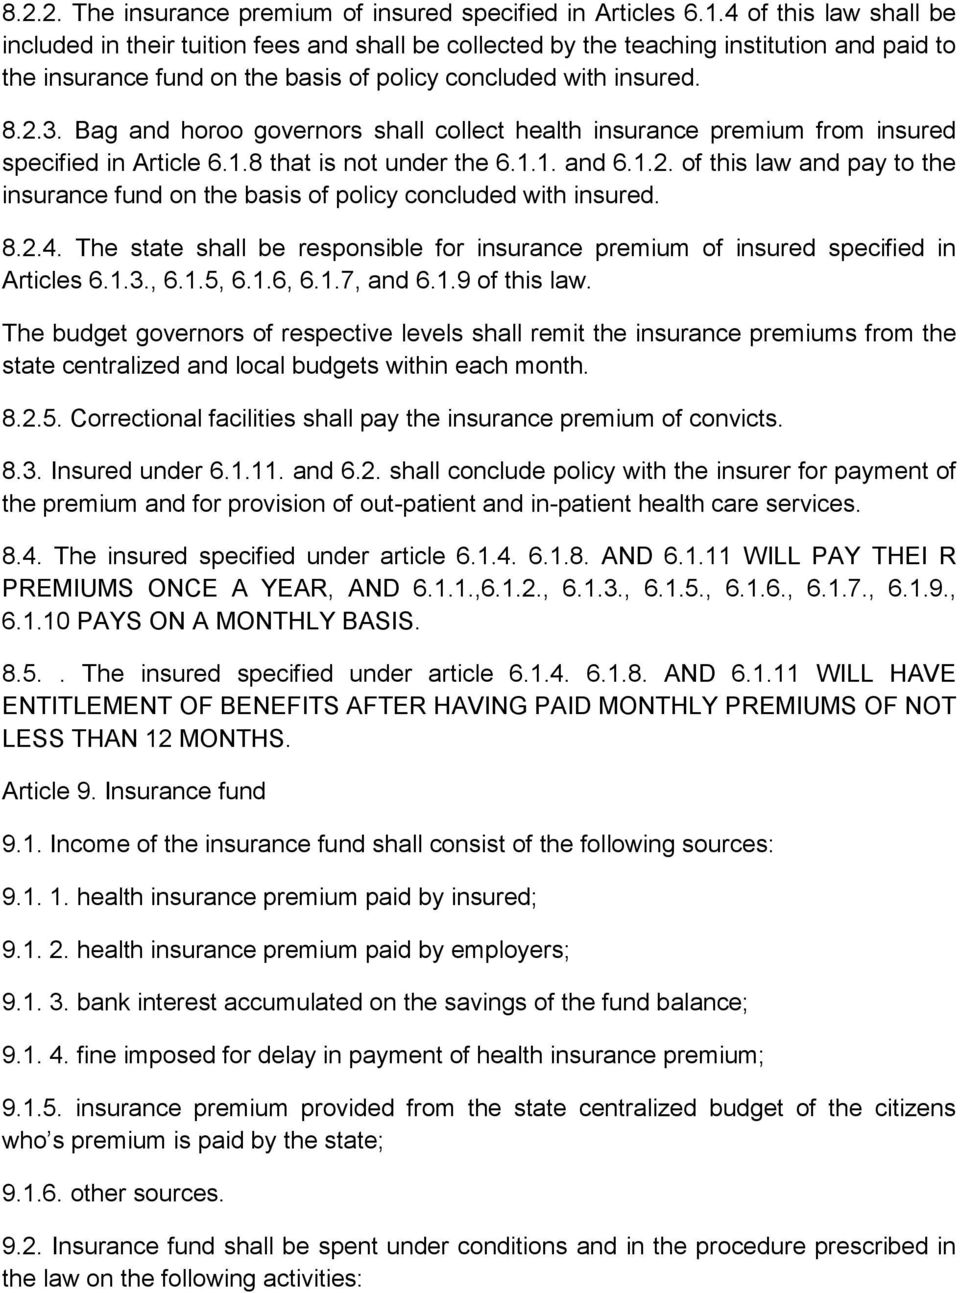 Bag and horoo governors shall collect health insurance premium from insured specified in Article 6.1.8 that is not under the 6.1.1. and 6.1.2.